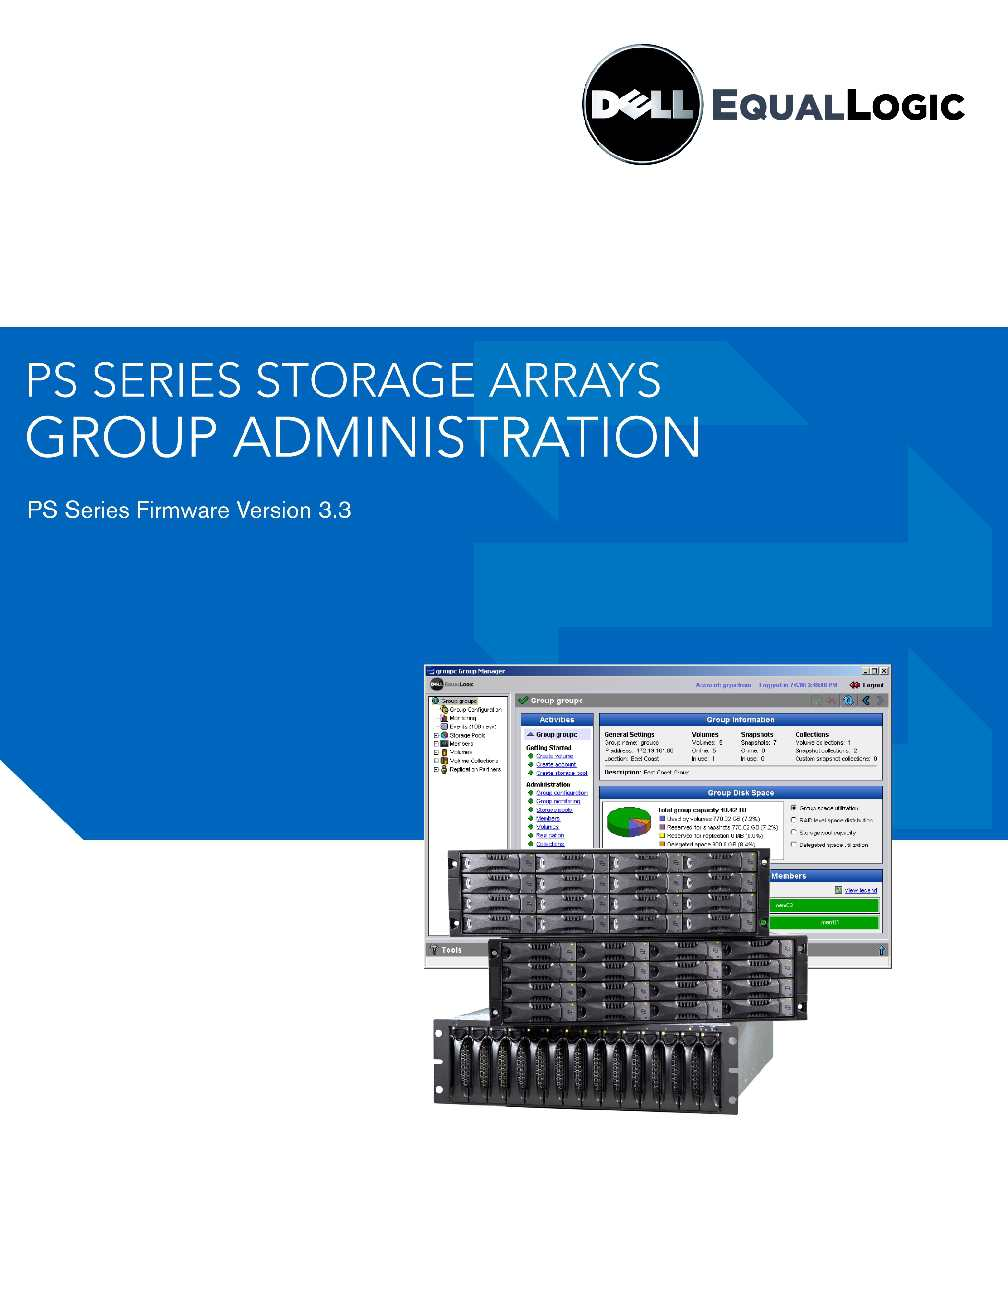 Updating firmware for dell equallogic ps series storage arrays